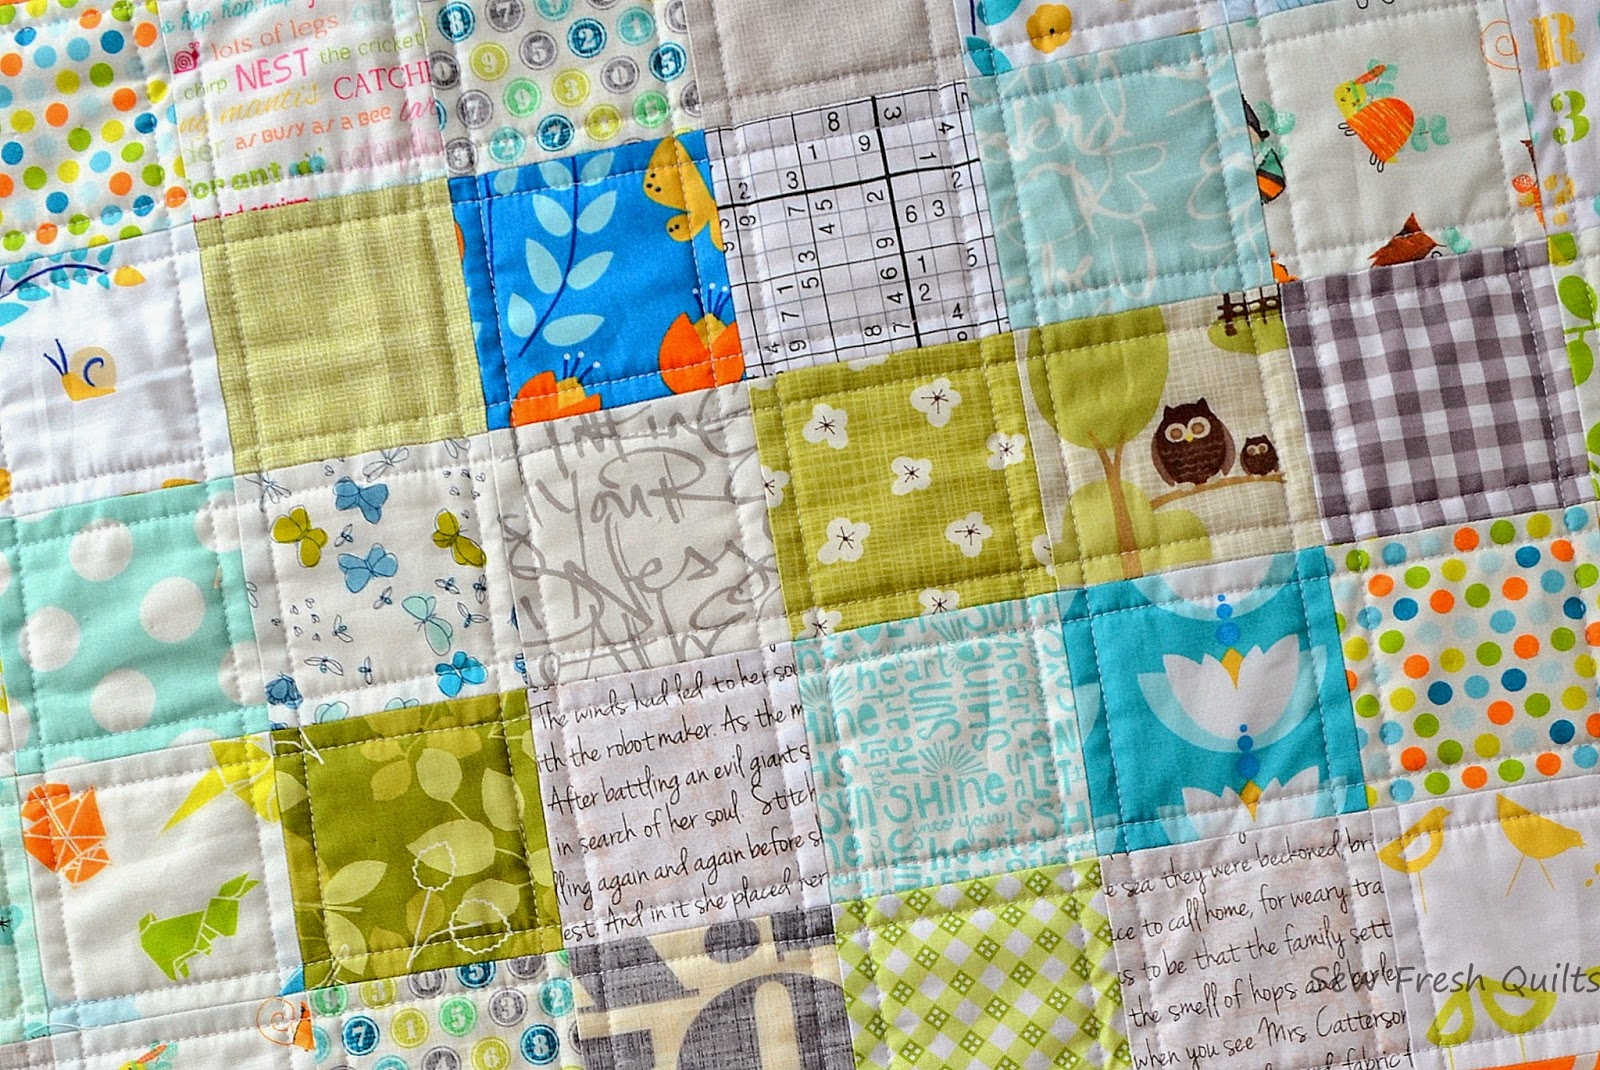 Sew Fresh Quilts Top 10 Tips For New Quilters Quilting